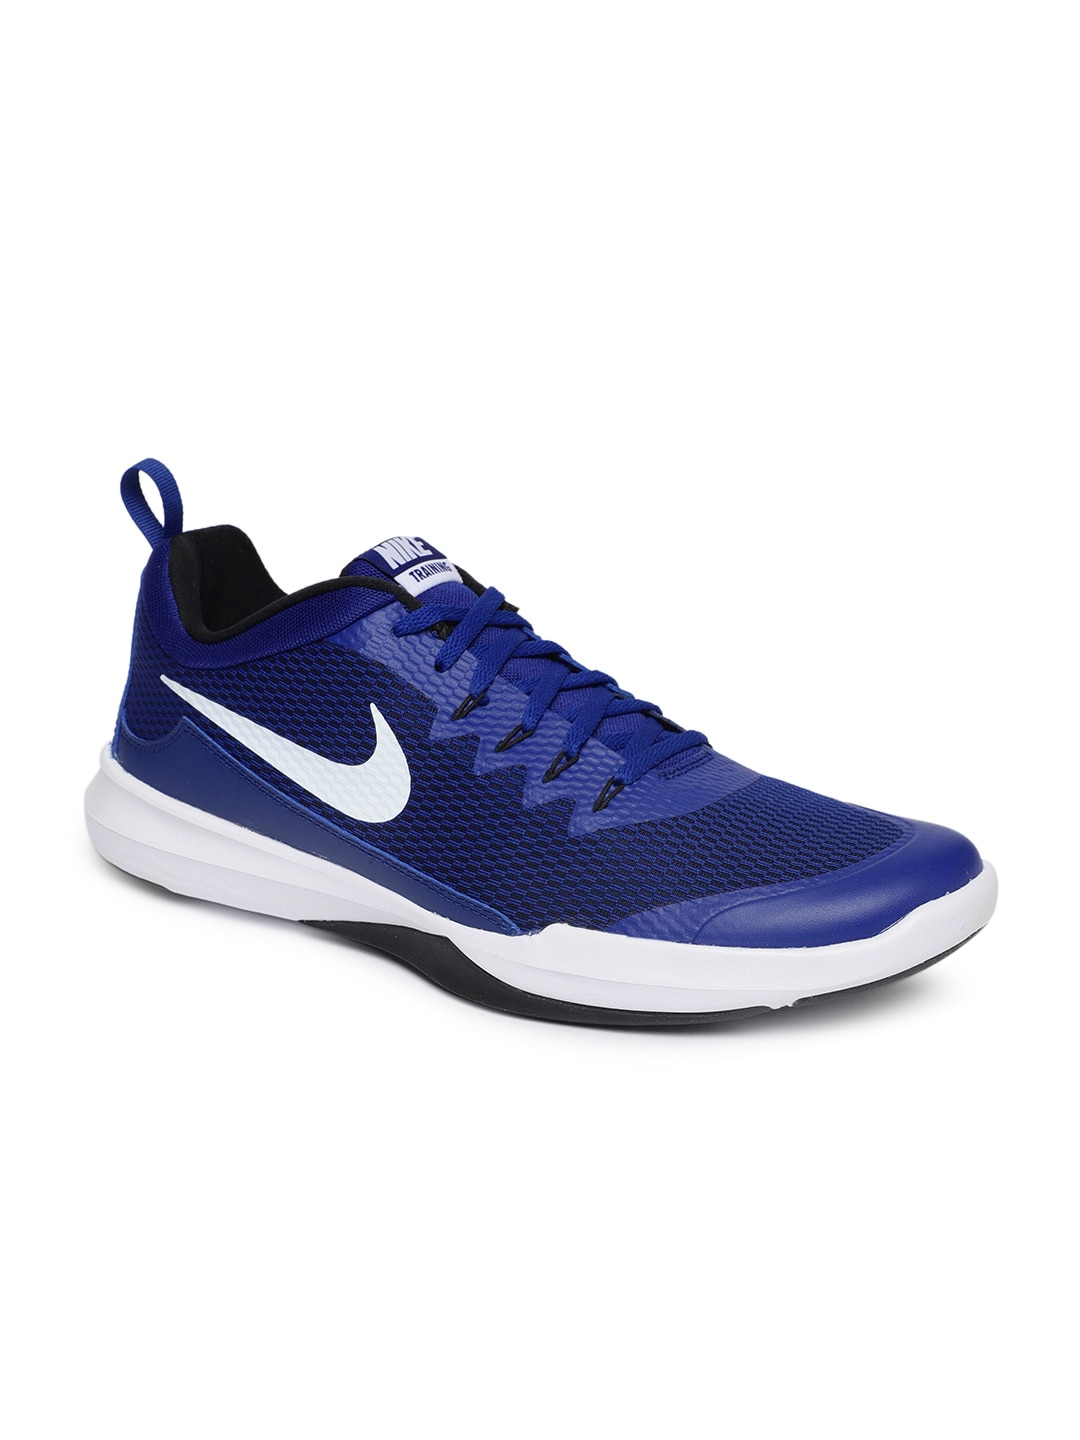 cheap for discount 4c5d4 b330a Nike Training Shoes - Buy Nike Training Shoes For Men   Women in India